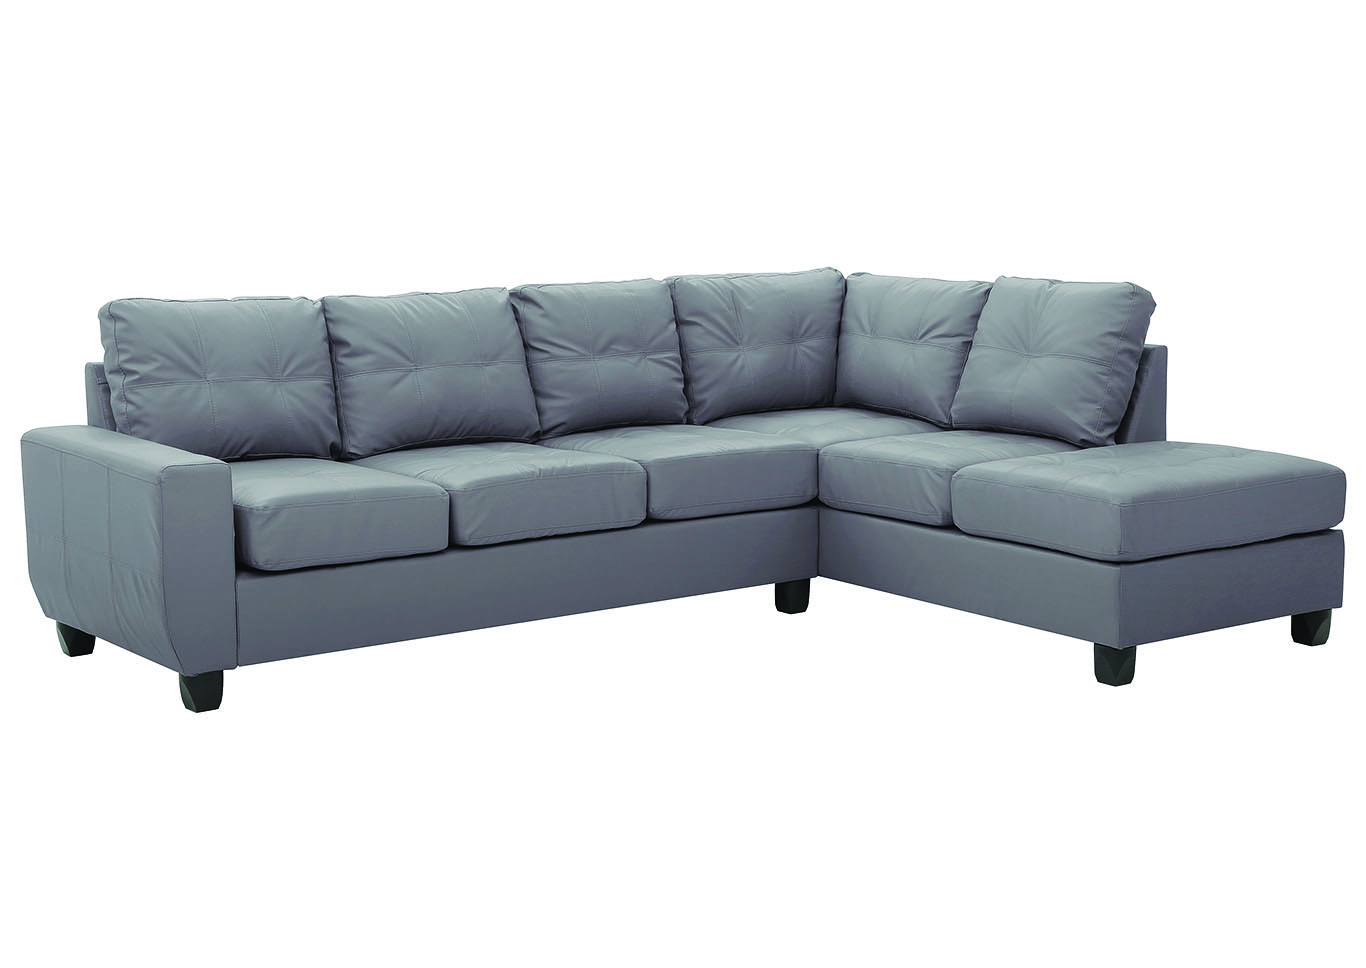 Gray Faux Leather Sectional,Glory Furniture